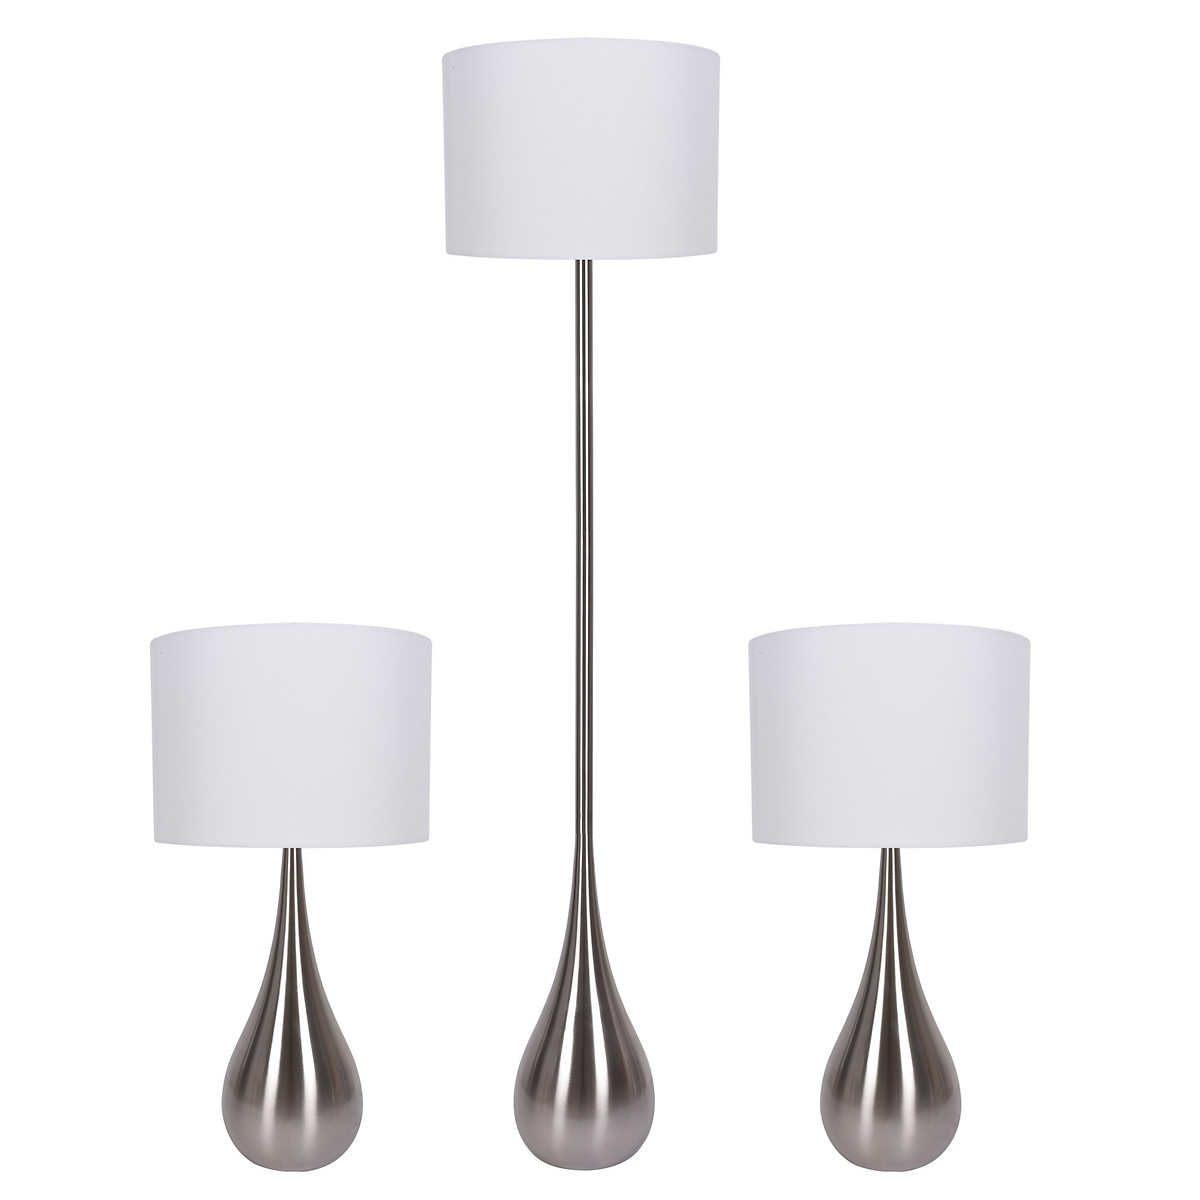 Beijing 3 Pc Lamp Set Lamp Sets Lamp Floor Lamp